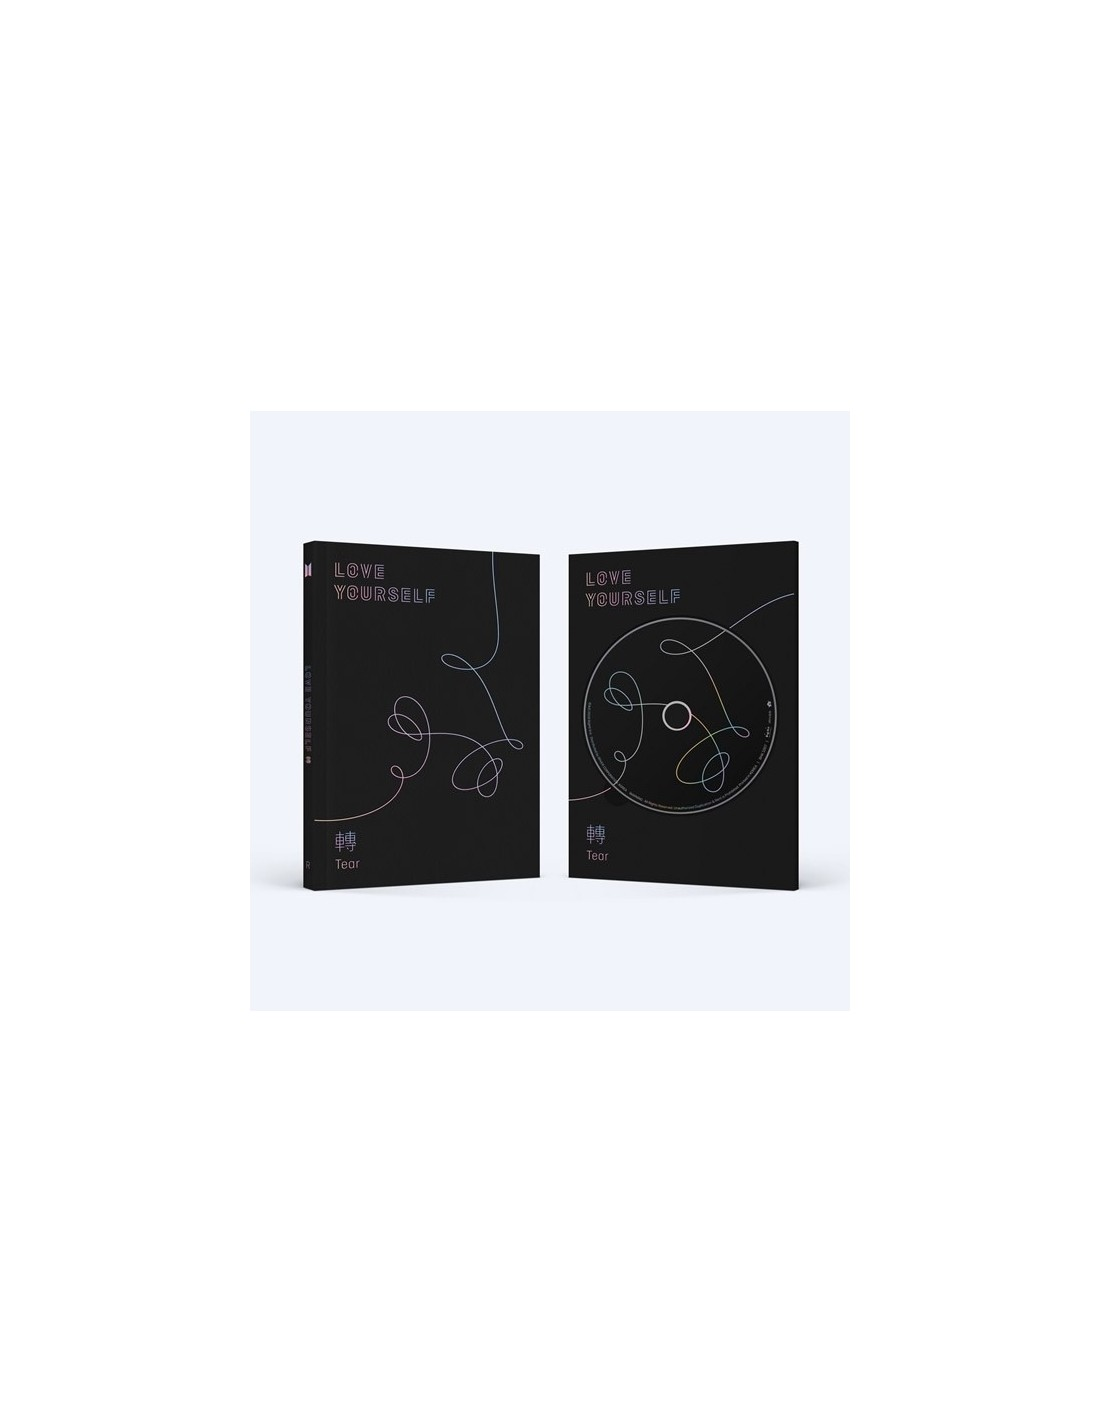 Bts 3rd Album Vol 3 Love Yourself 轉 Tear Cd Poster